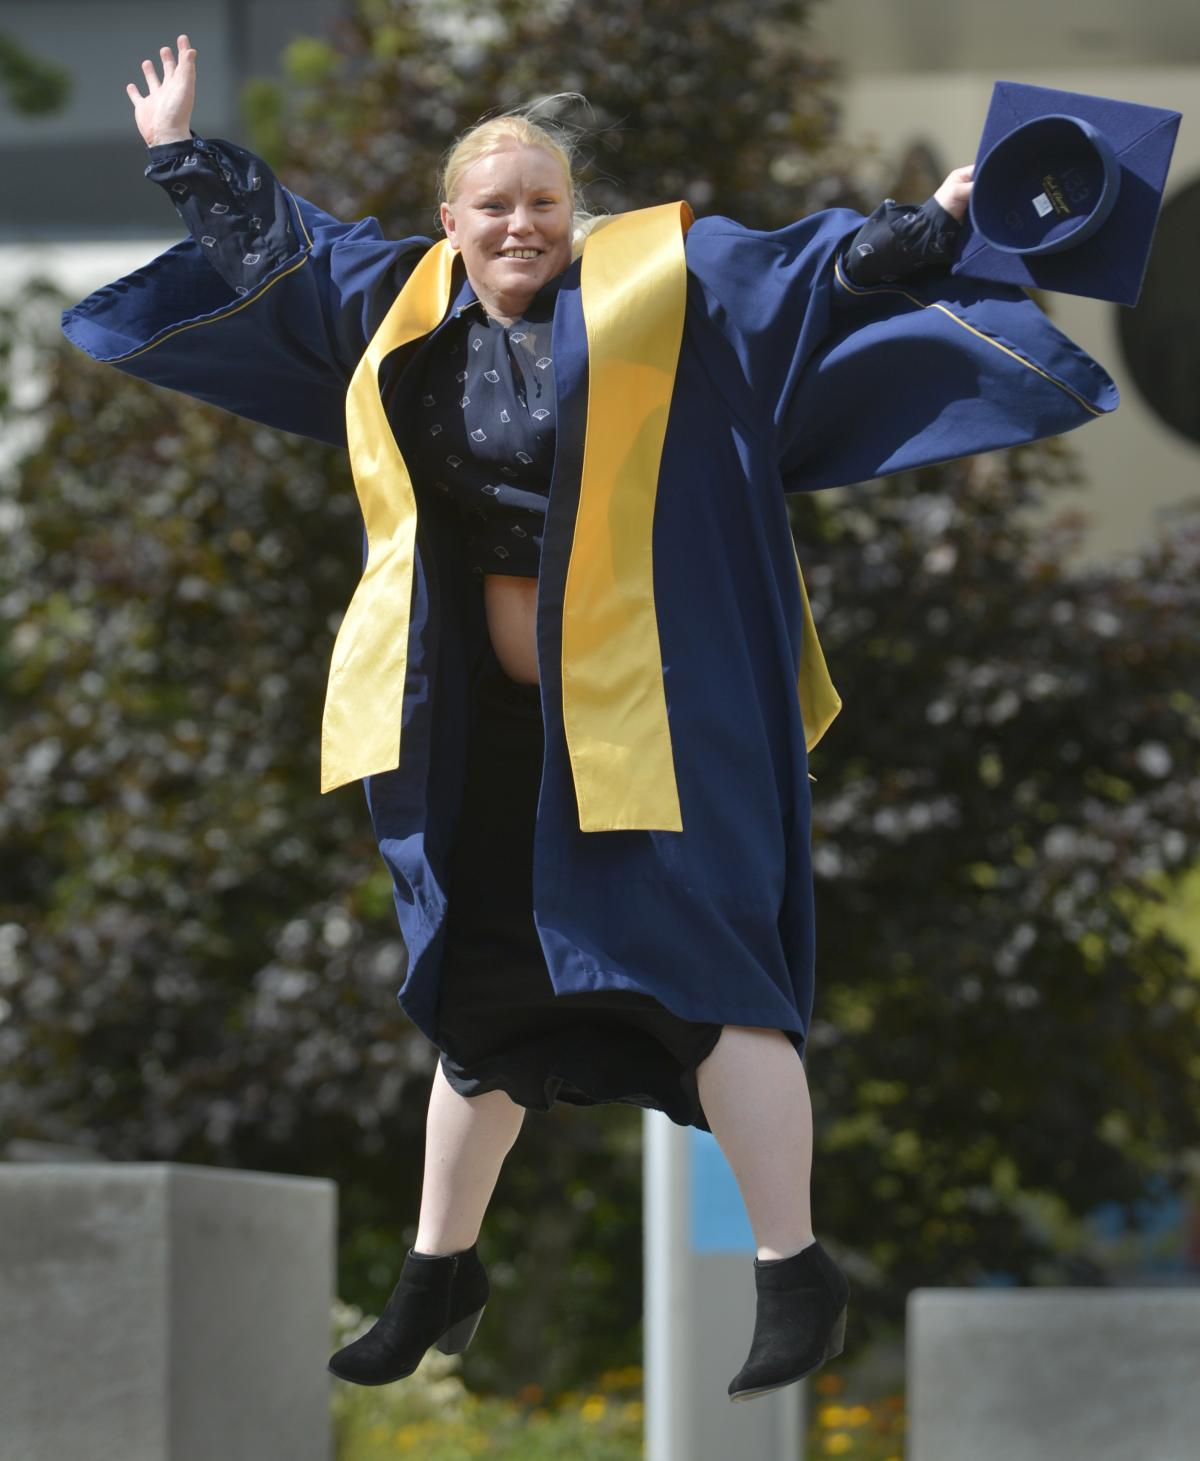 Happy to graduate after overcoming challenges